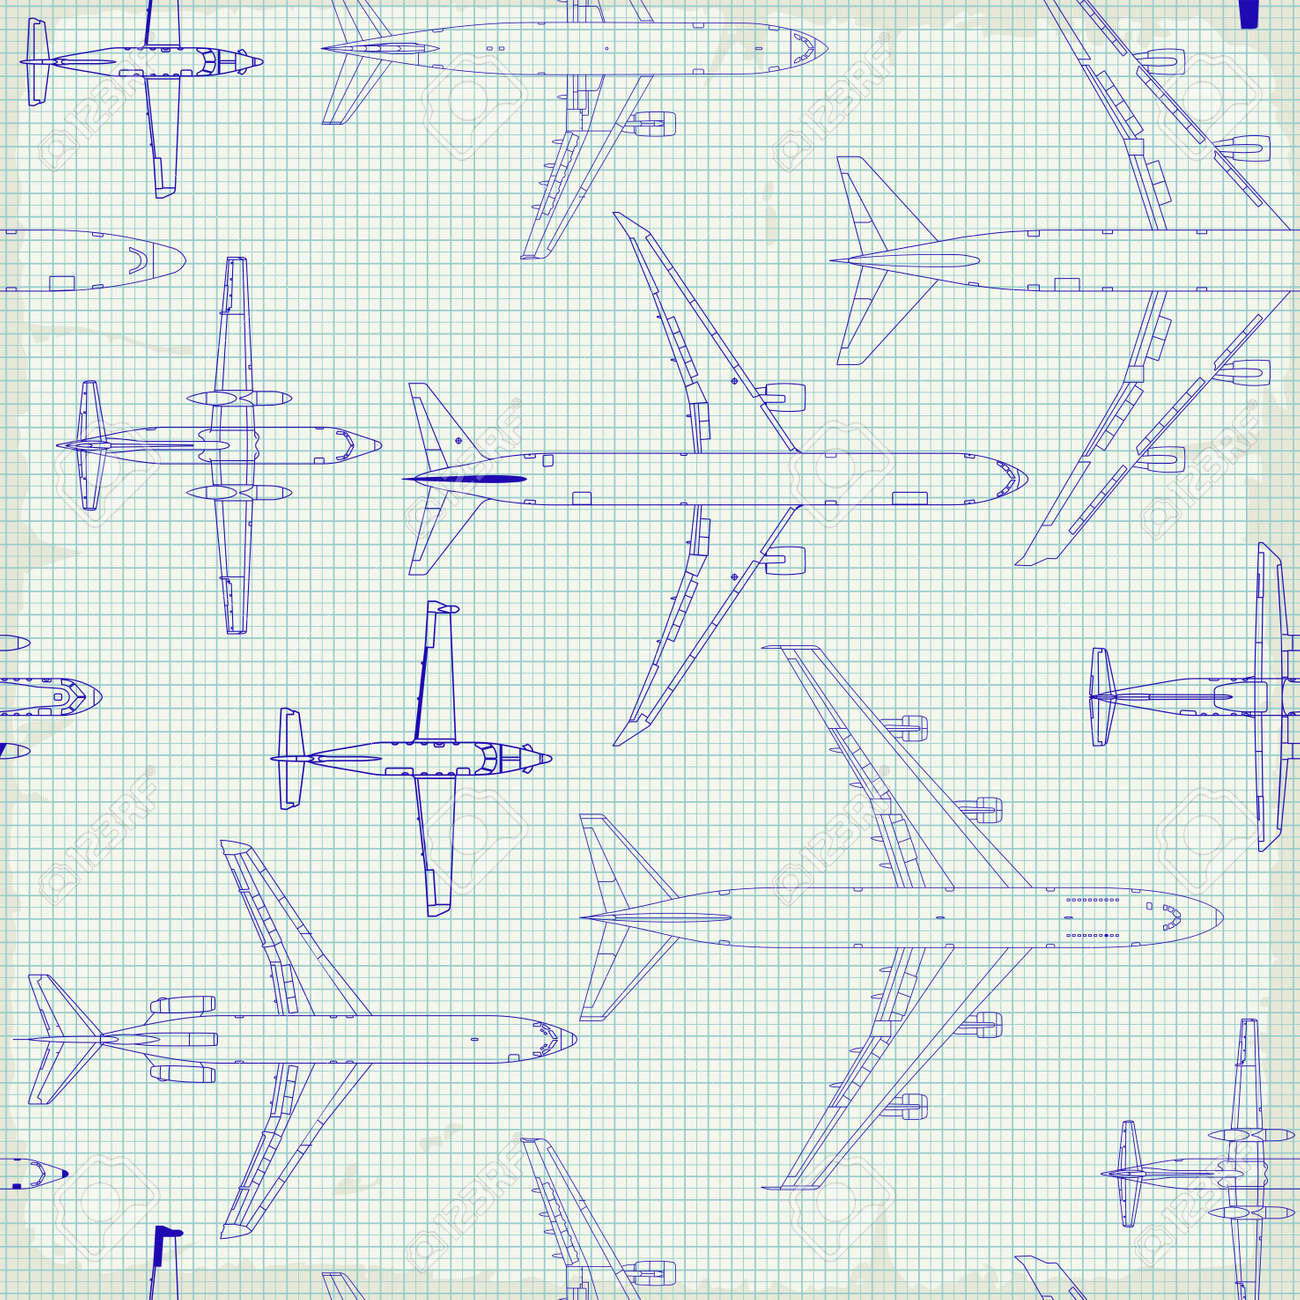 Seamless pattern flying passenger airplanes from different times. airplane drawings on graph vintage paper - 158939884